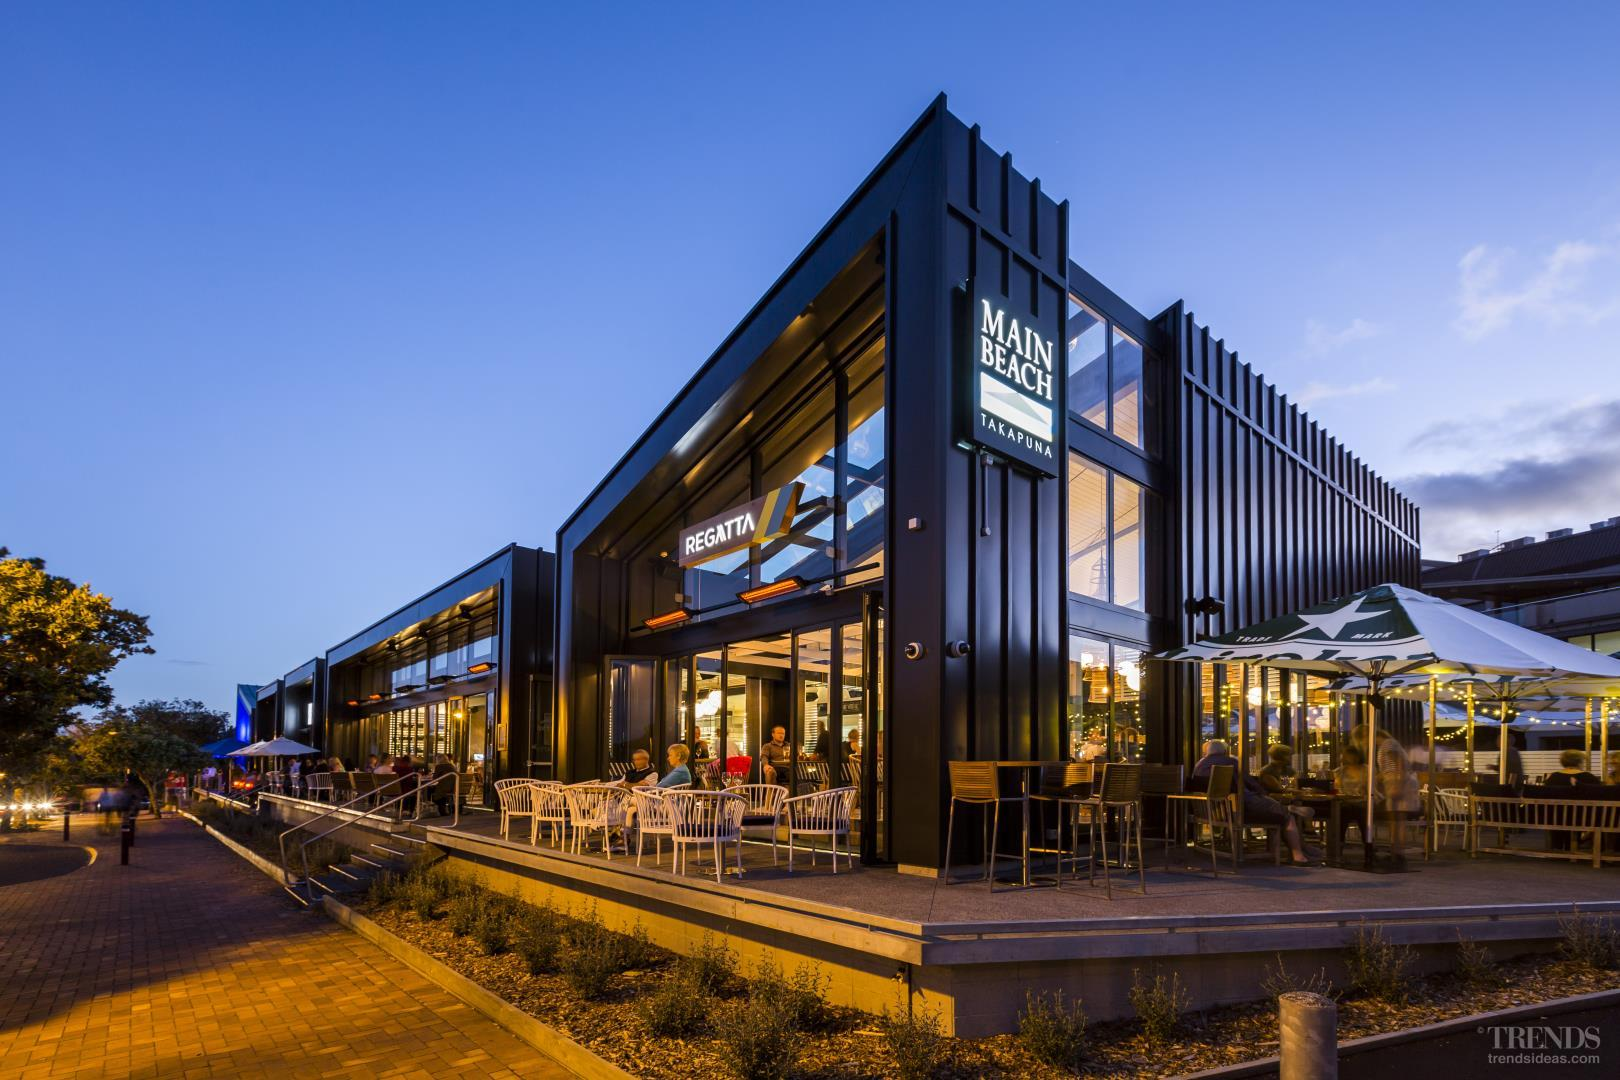 Main Beach Takapuna Adds A Welcoming New Hospitality Complex To Auckland 39 S North Shore